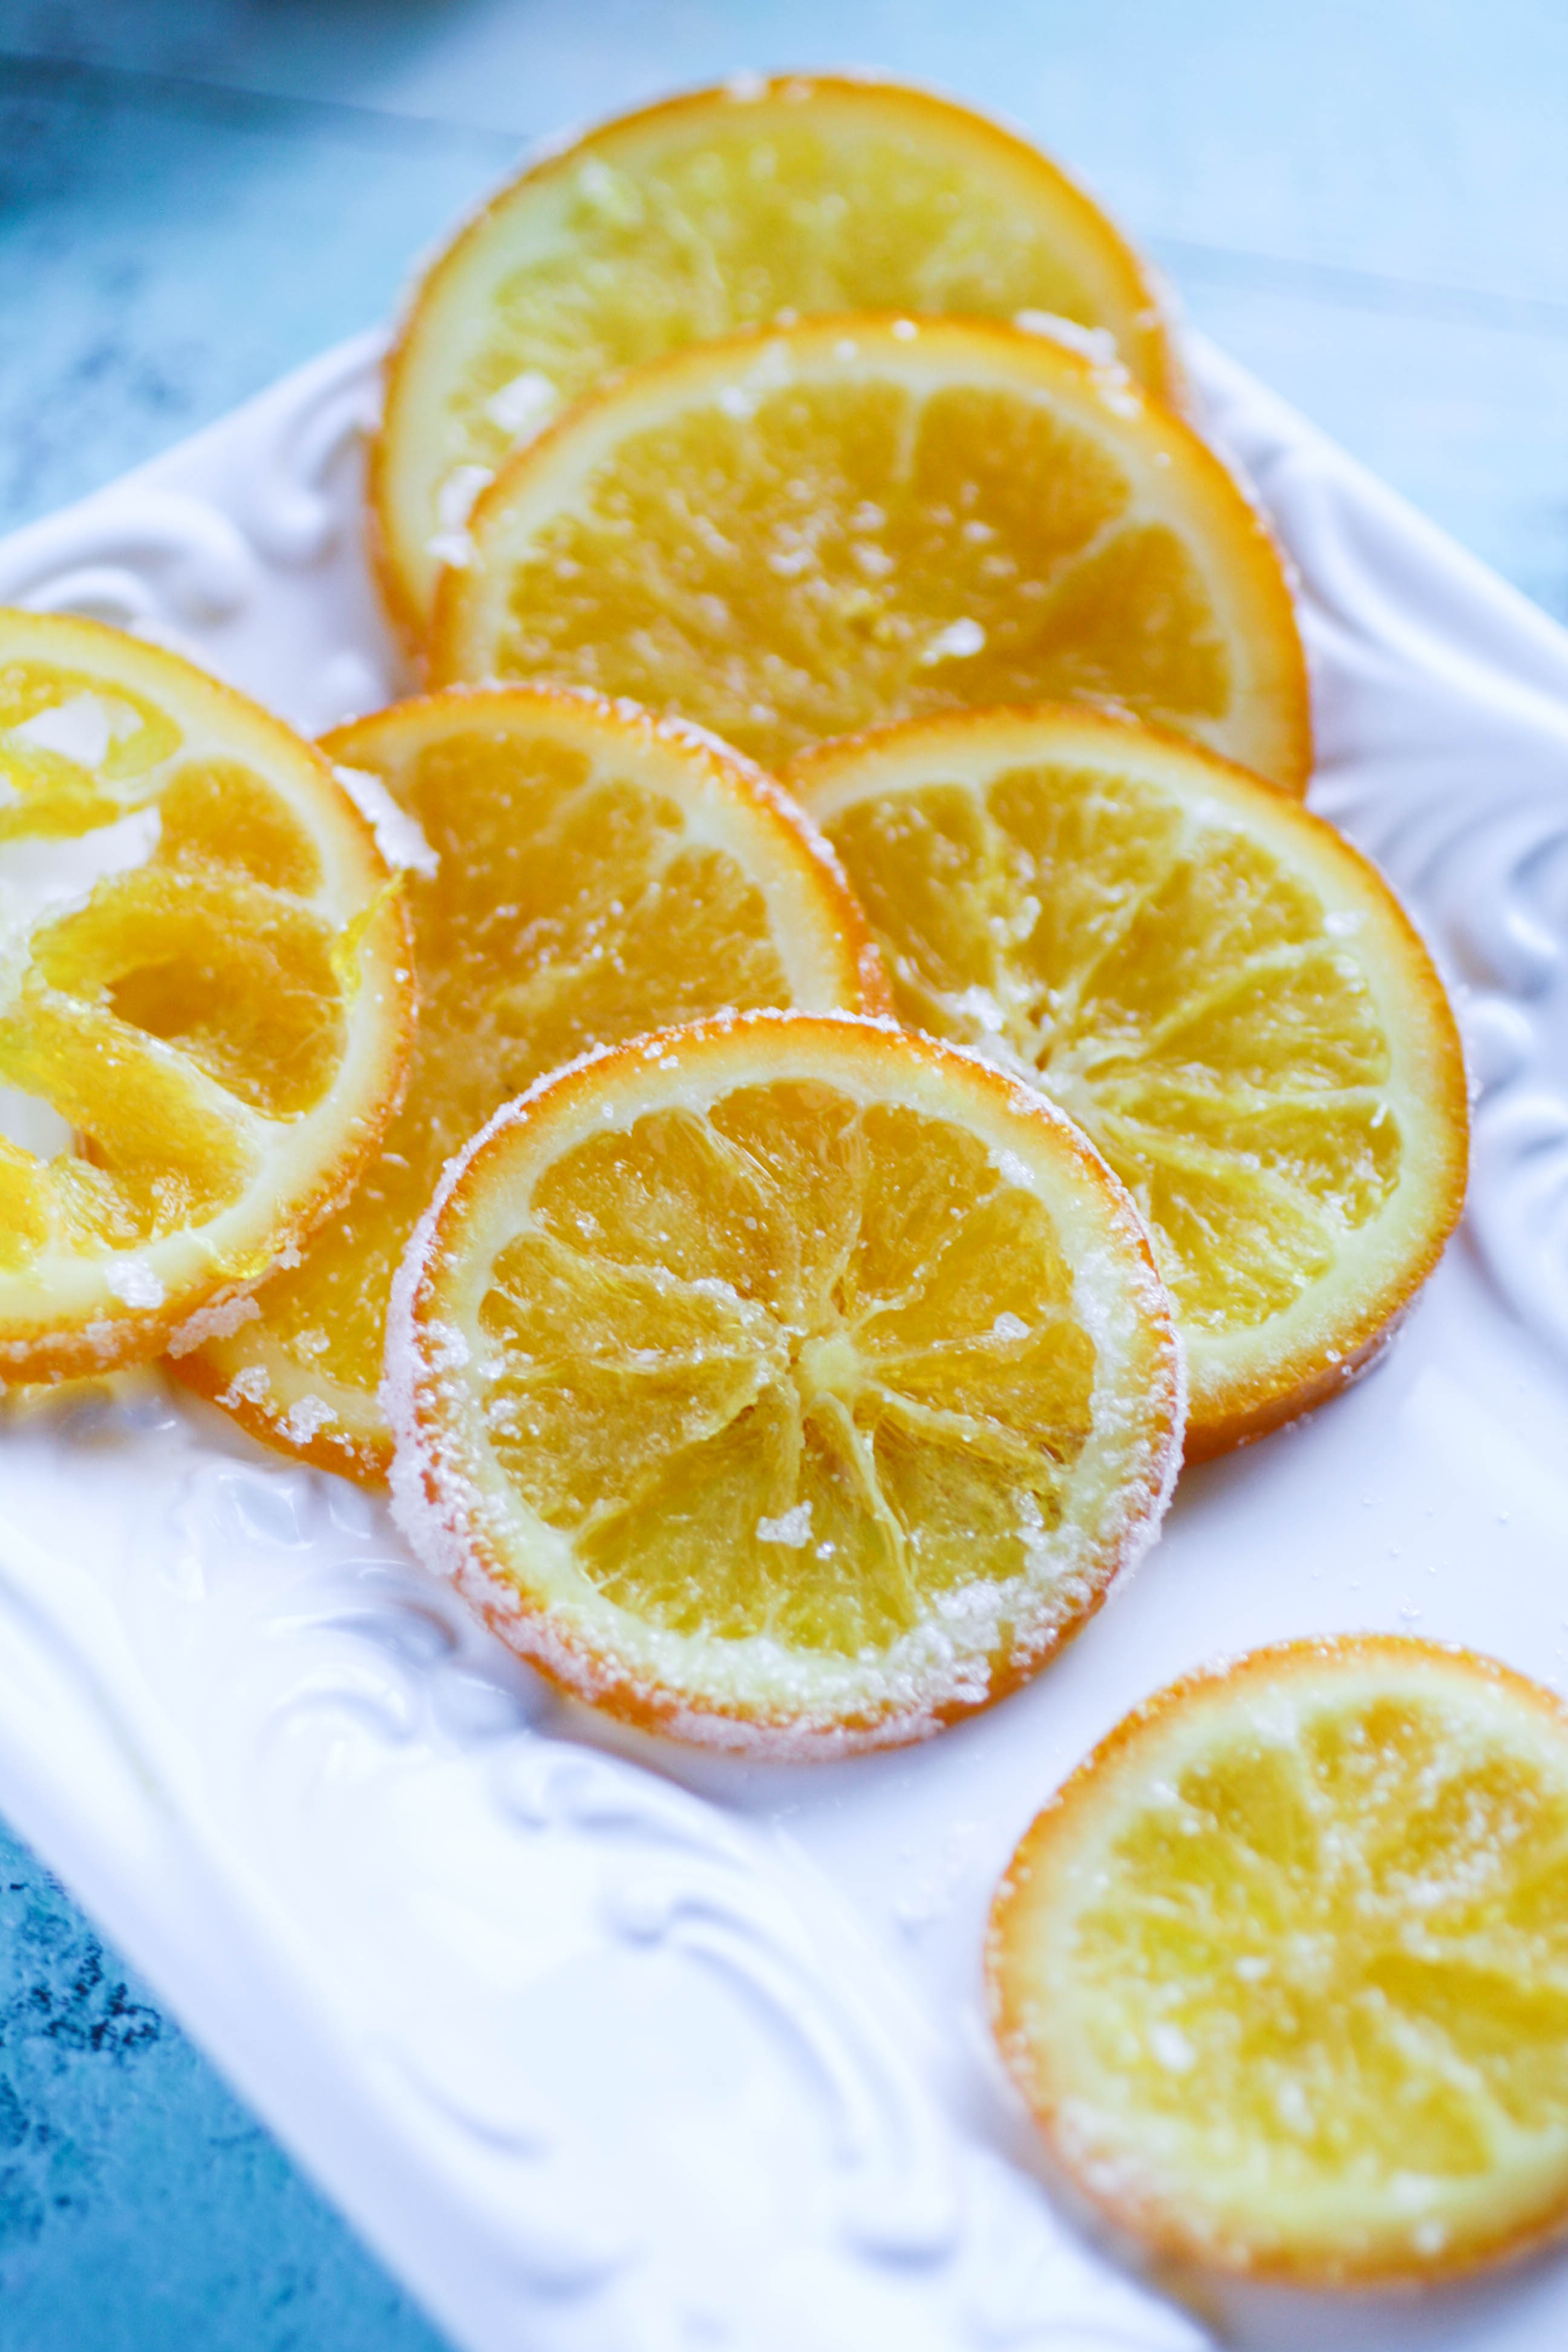 Candied Orange Slices are a lovely treat to brighten your day. Try these candied oranges to add brightness to your day!